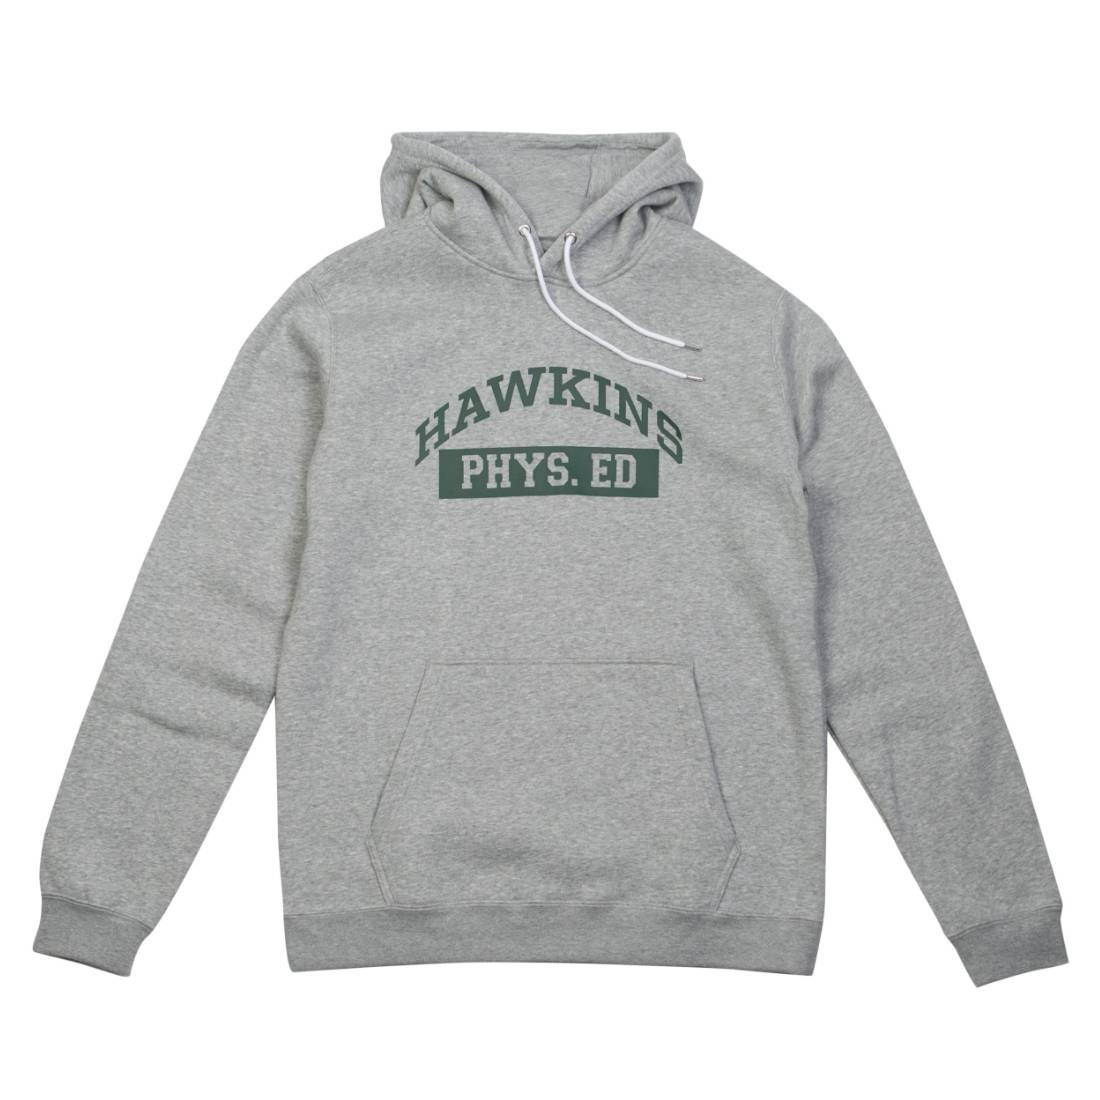 Nike x Stranger Things Men Hawkins High Pullover Hoody (dk grey heather / white / fir)